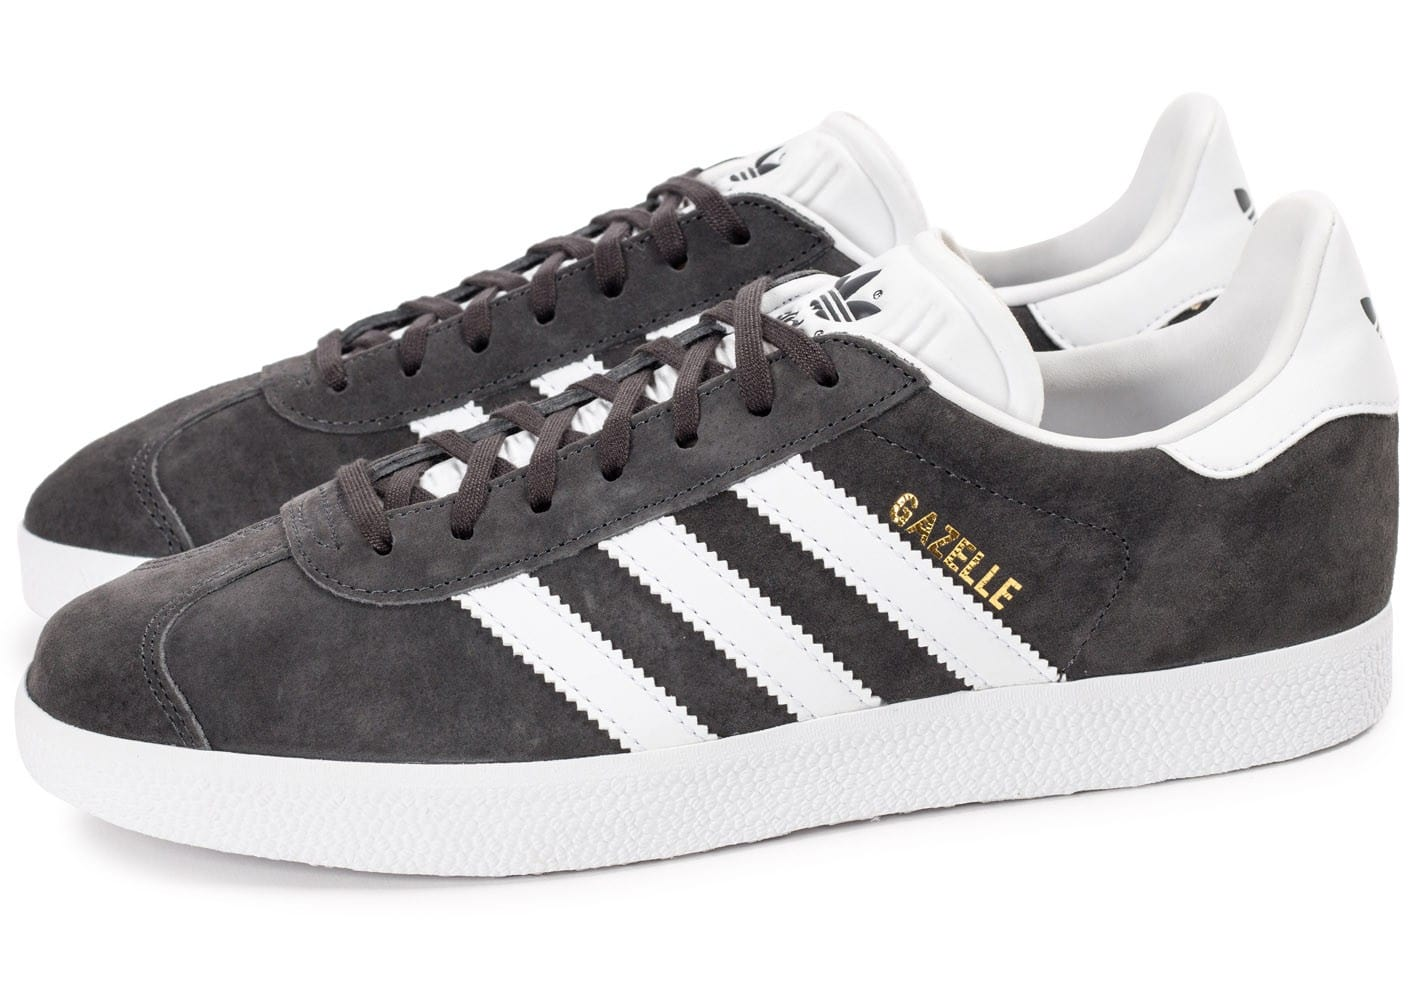 adidas Gazelle Anthracite Chaussures Baskets homme Chausport